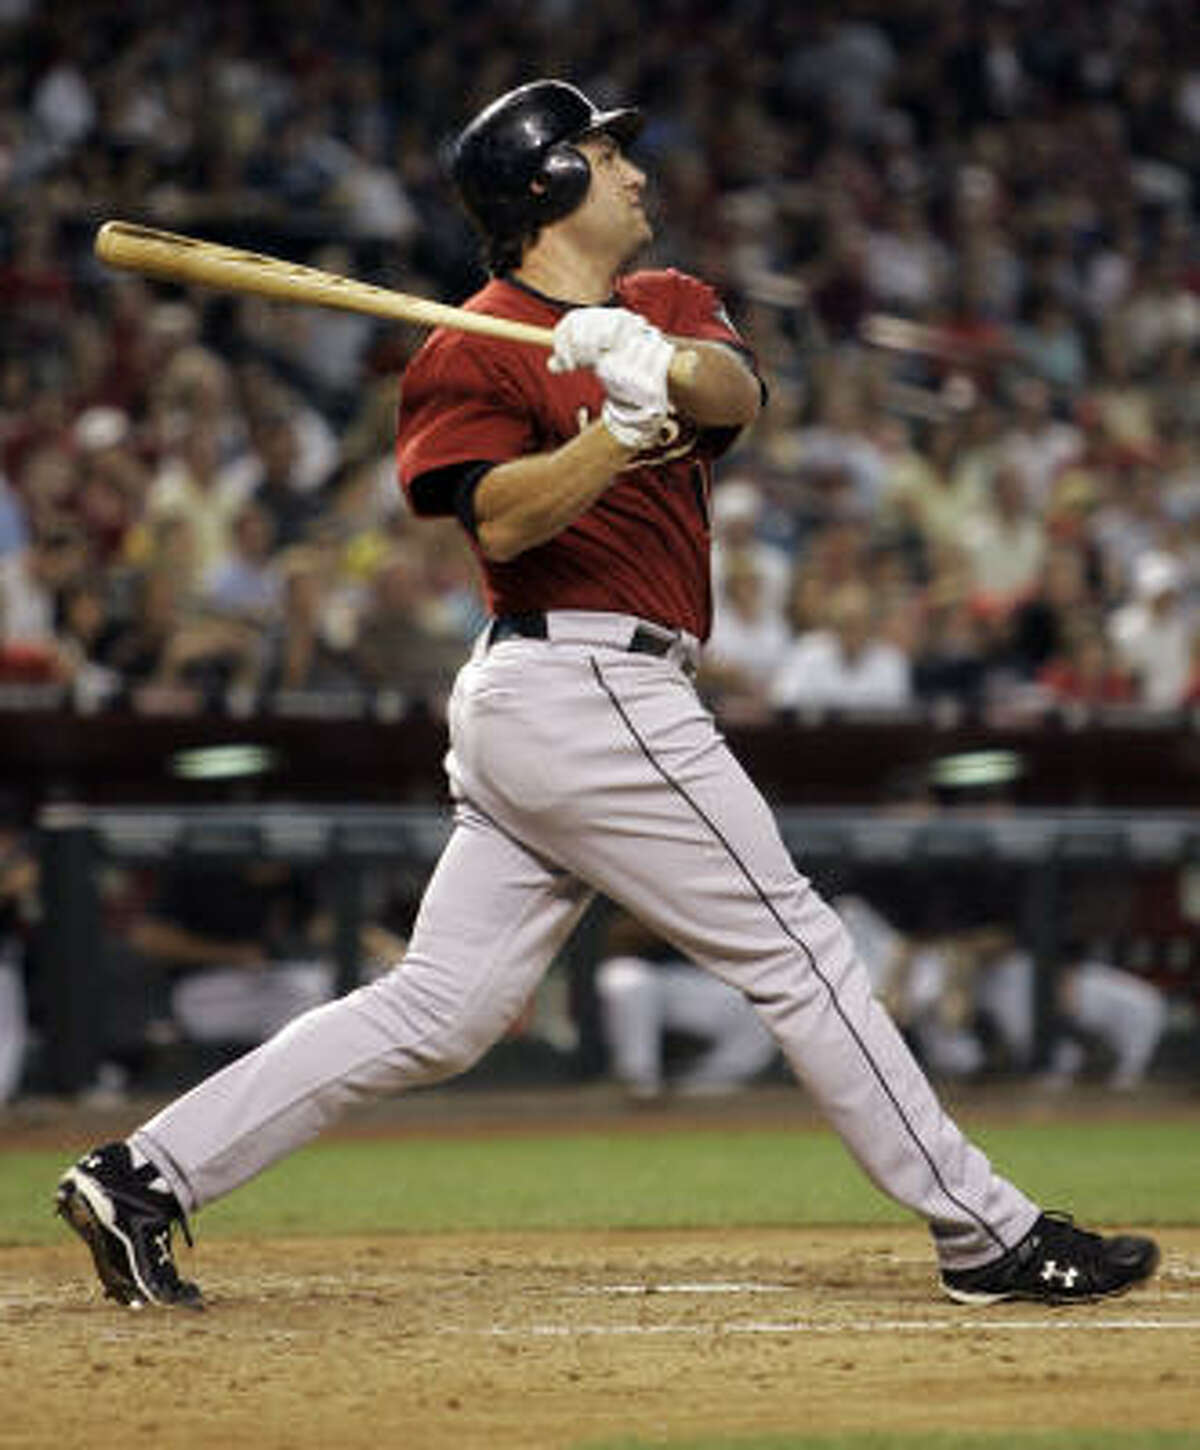 The Astros' Lance Berkman connects for his 300th career home run during the sixth inning against Arizona.